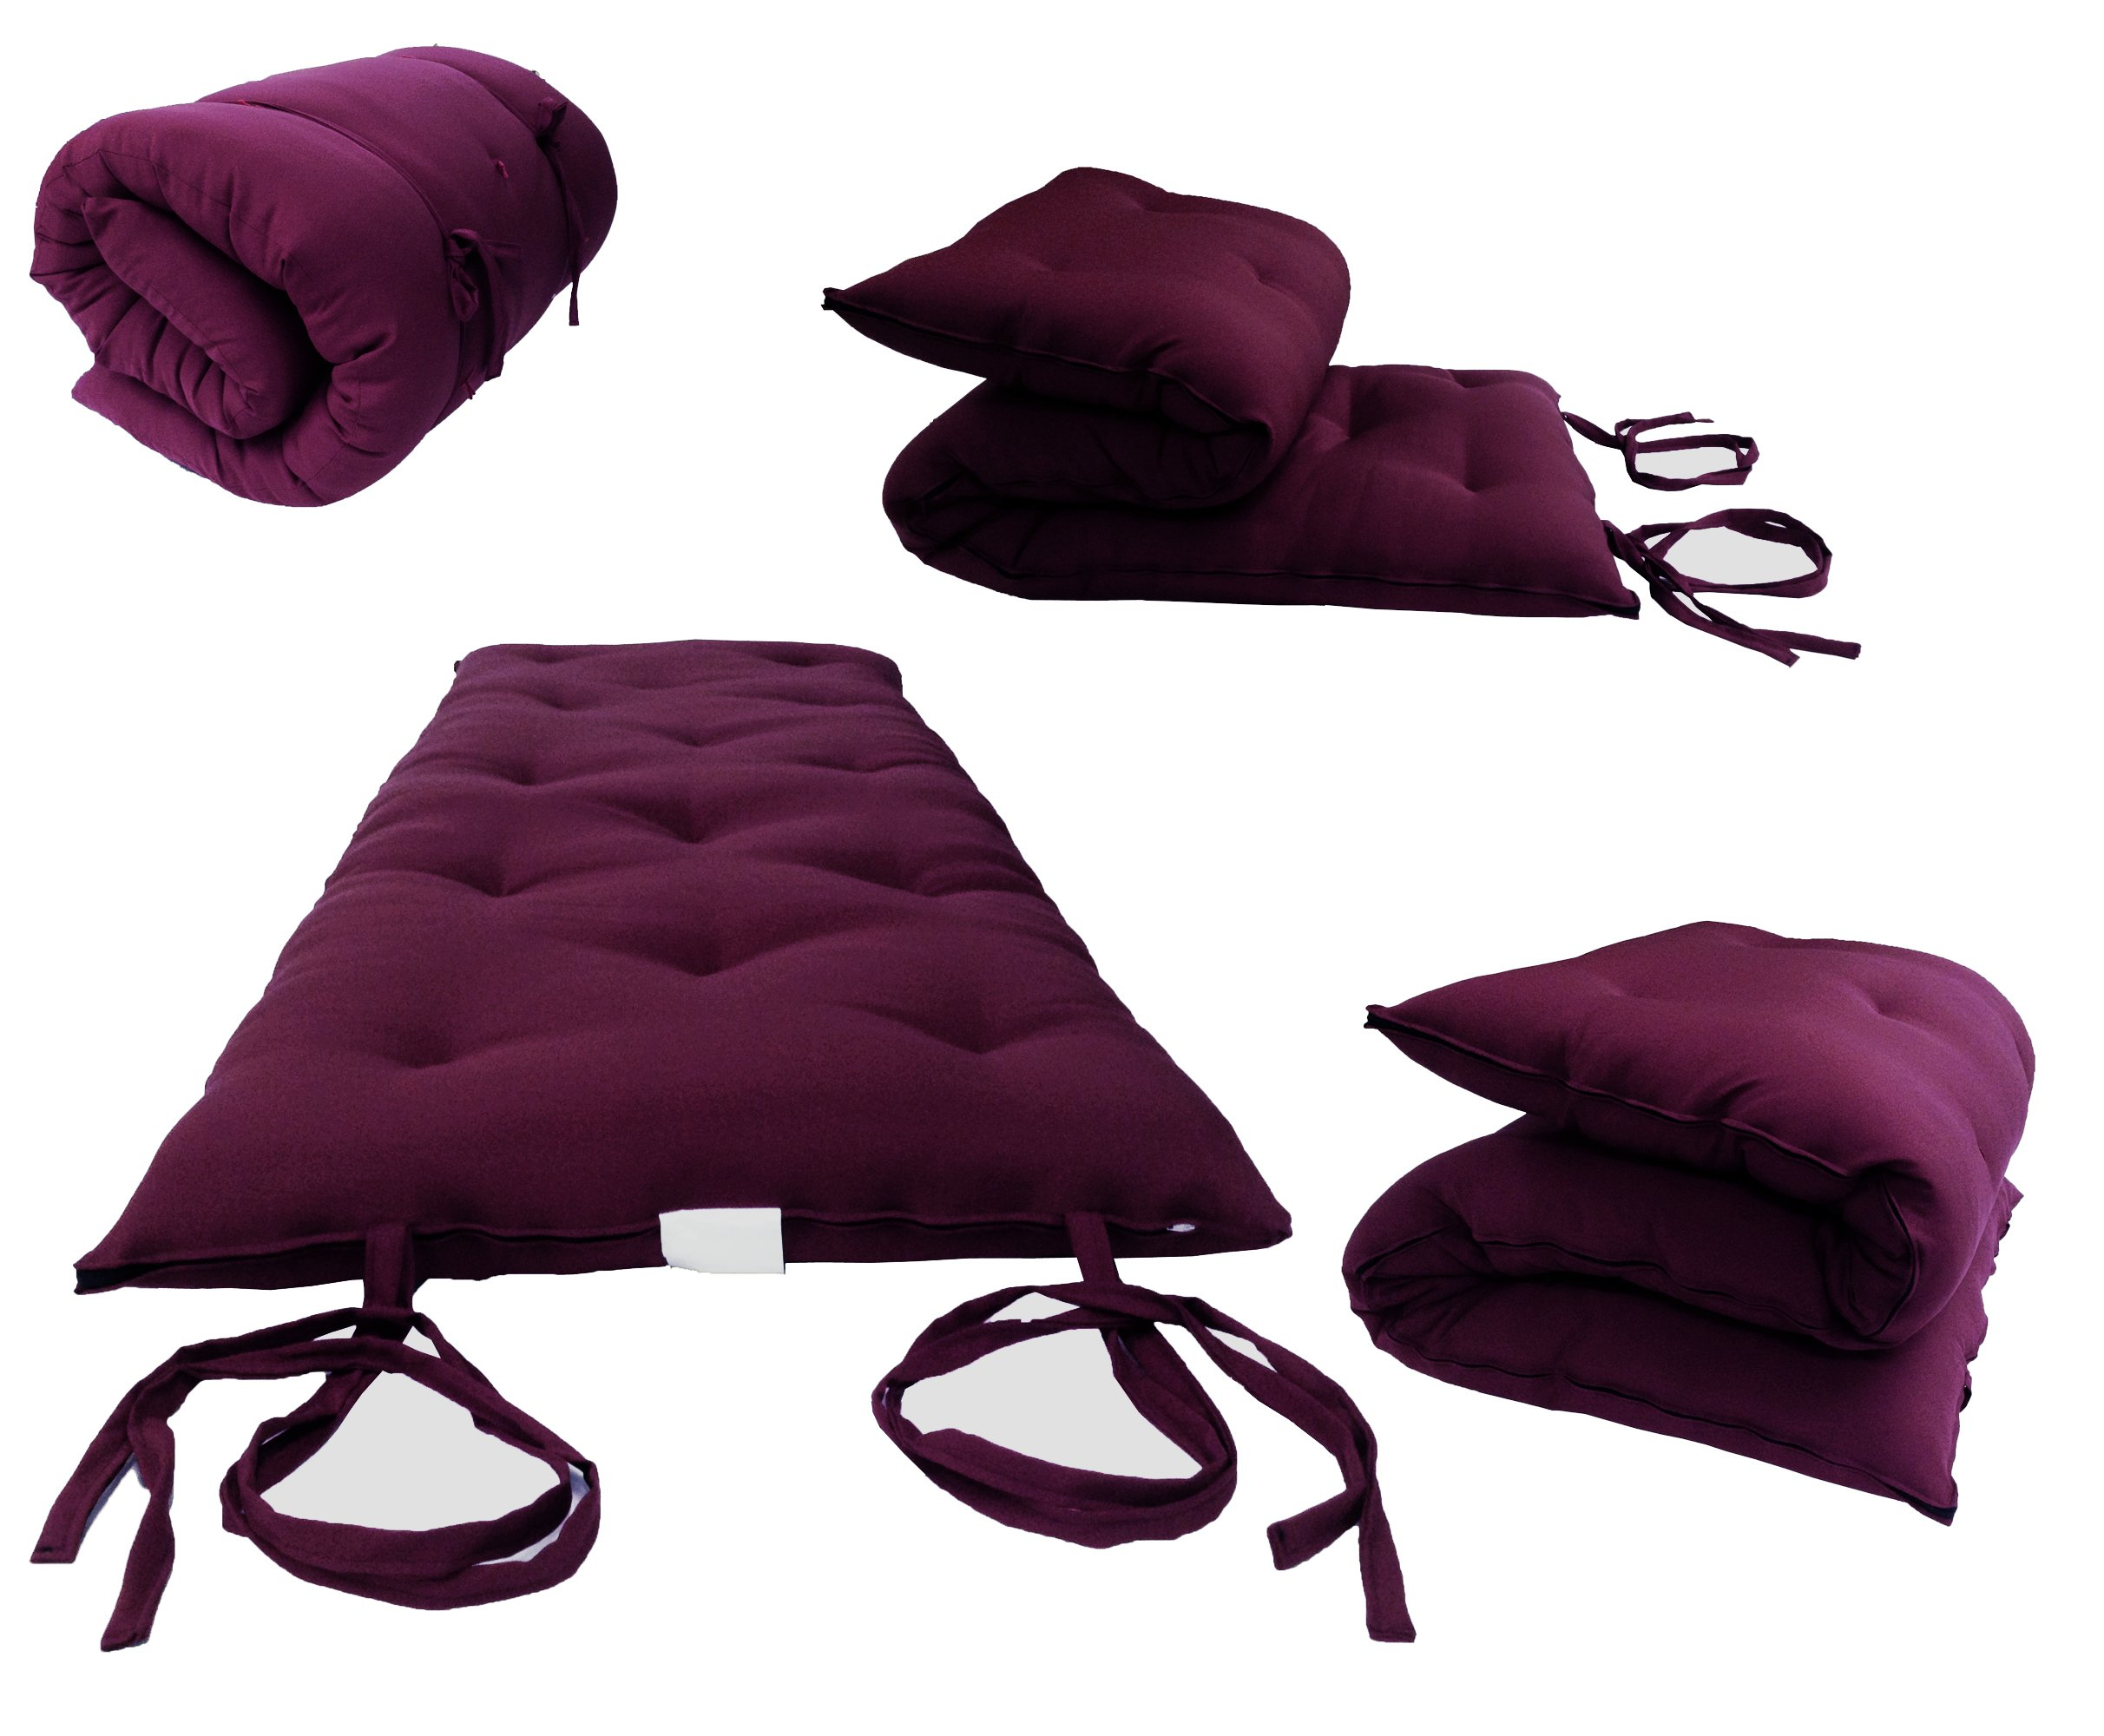 D&D Futon Furniture Brand New Queen Size Burgundy Traditional Japanese Floor Futon Mattresses, Foldable Cushion Mats, Yoga, Meditaion 60'' Wide X 80'' Long by D&D Futon Furniture